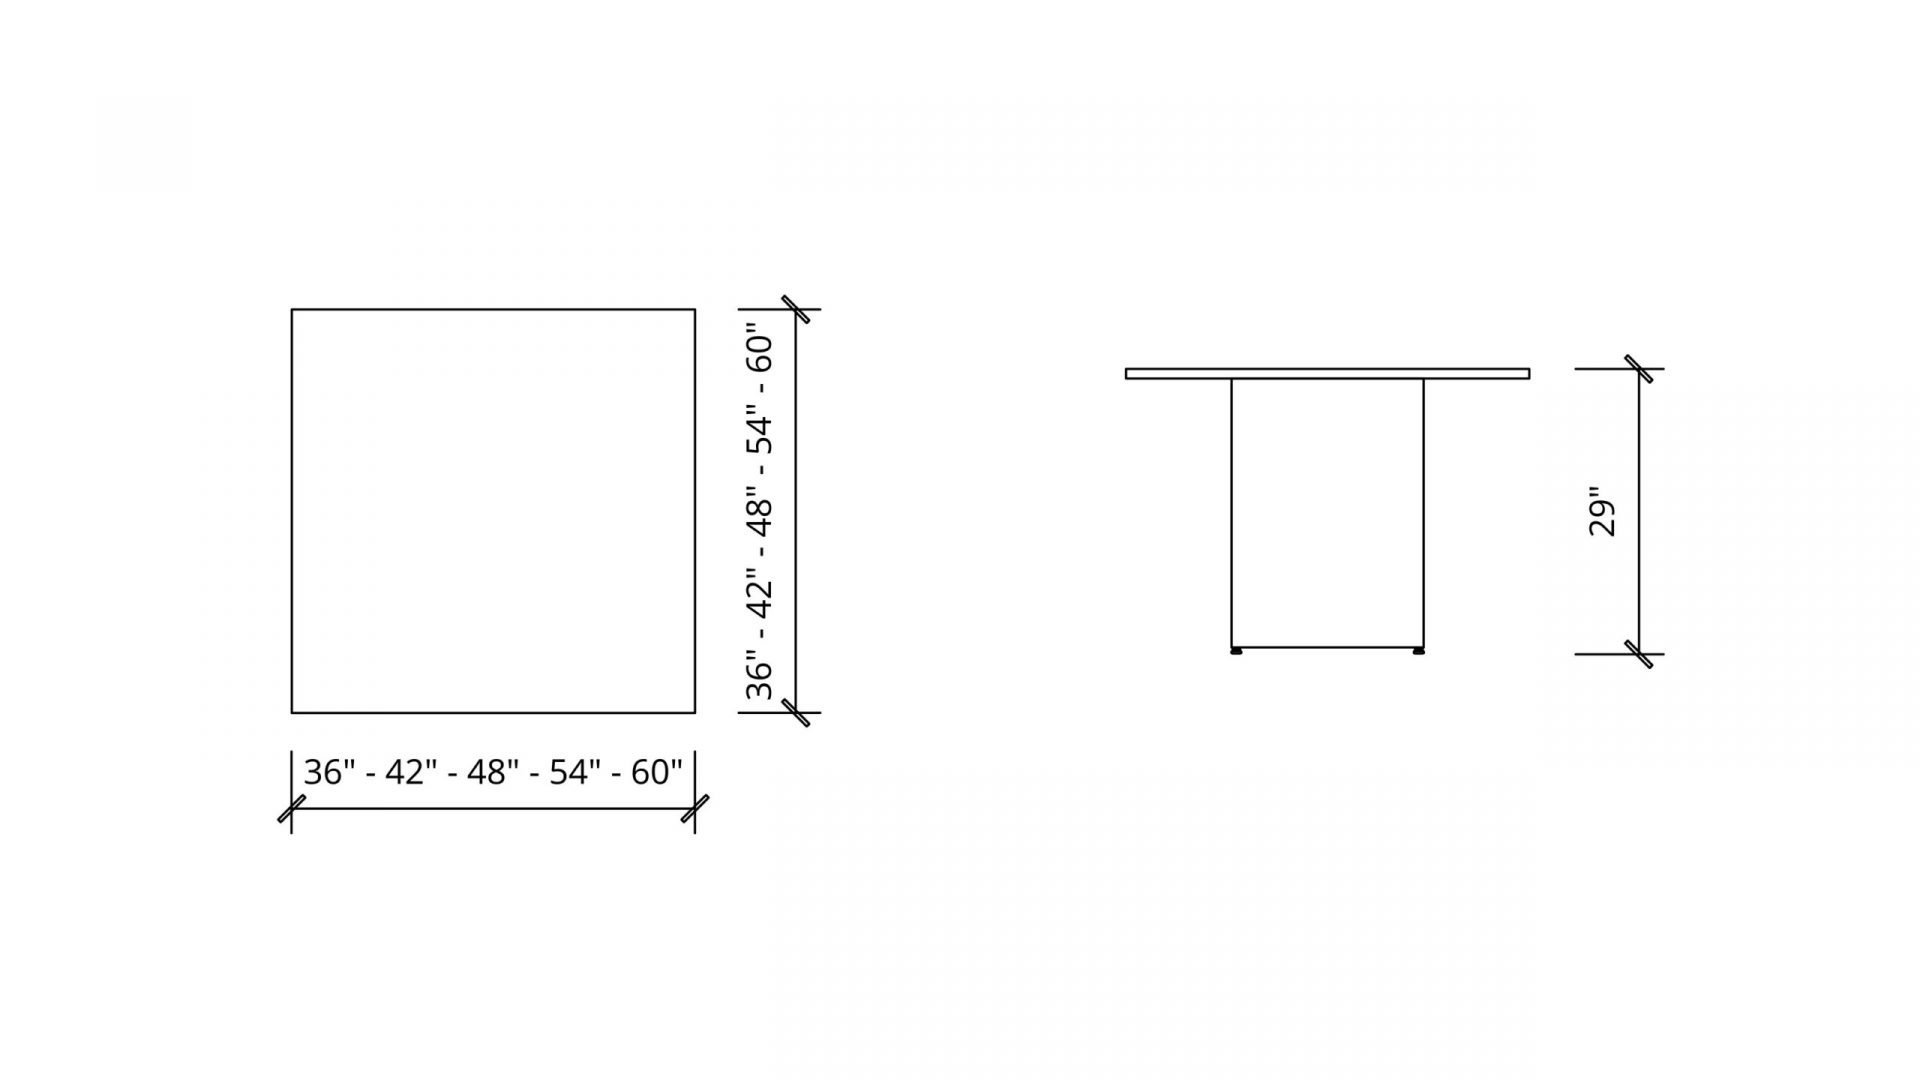 Imperial Dimensions of Square Meeting Table 1662